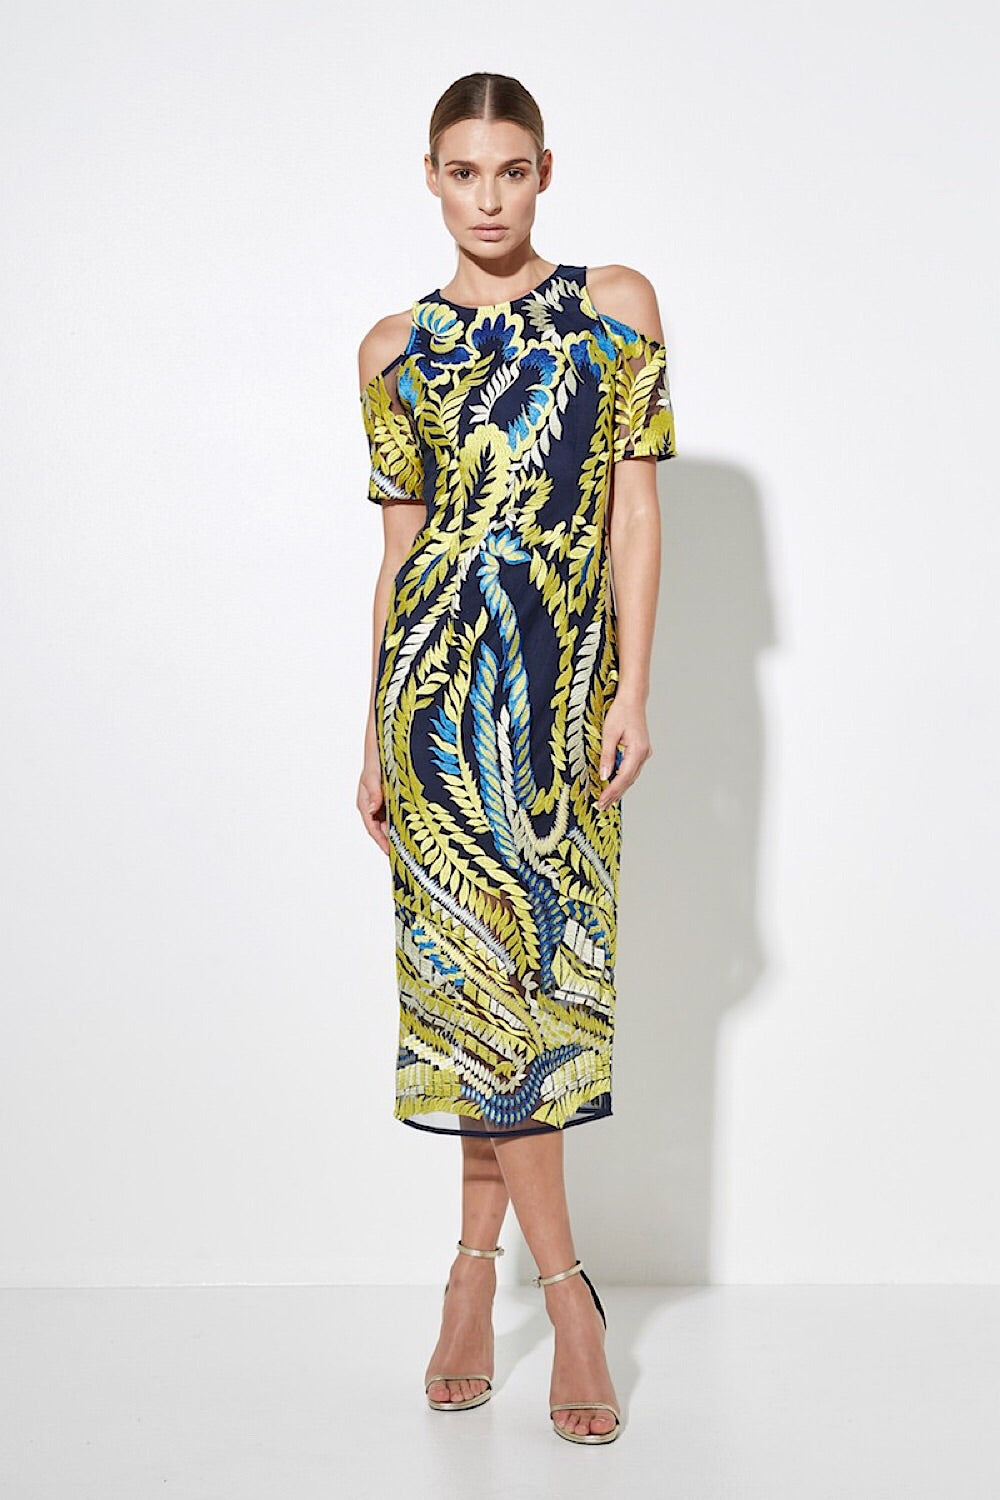 The Humming Bird Midi Dress